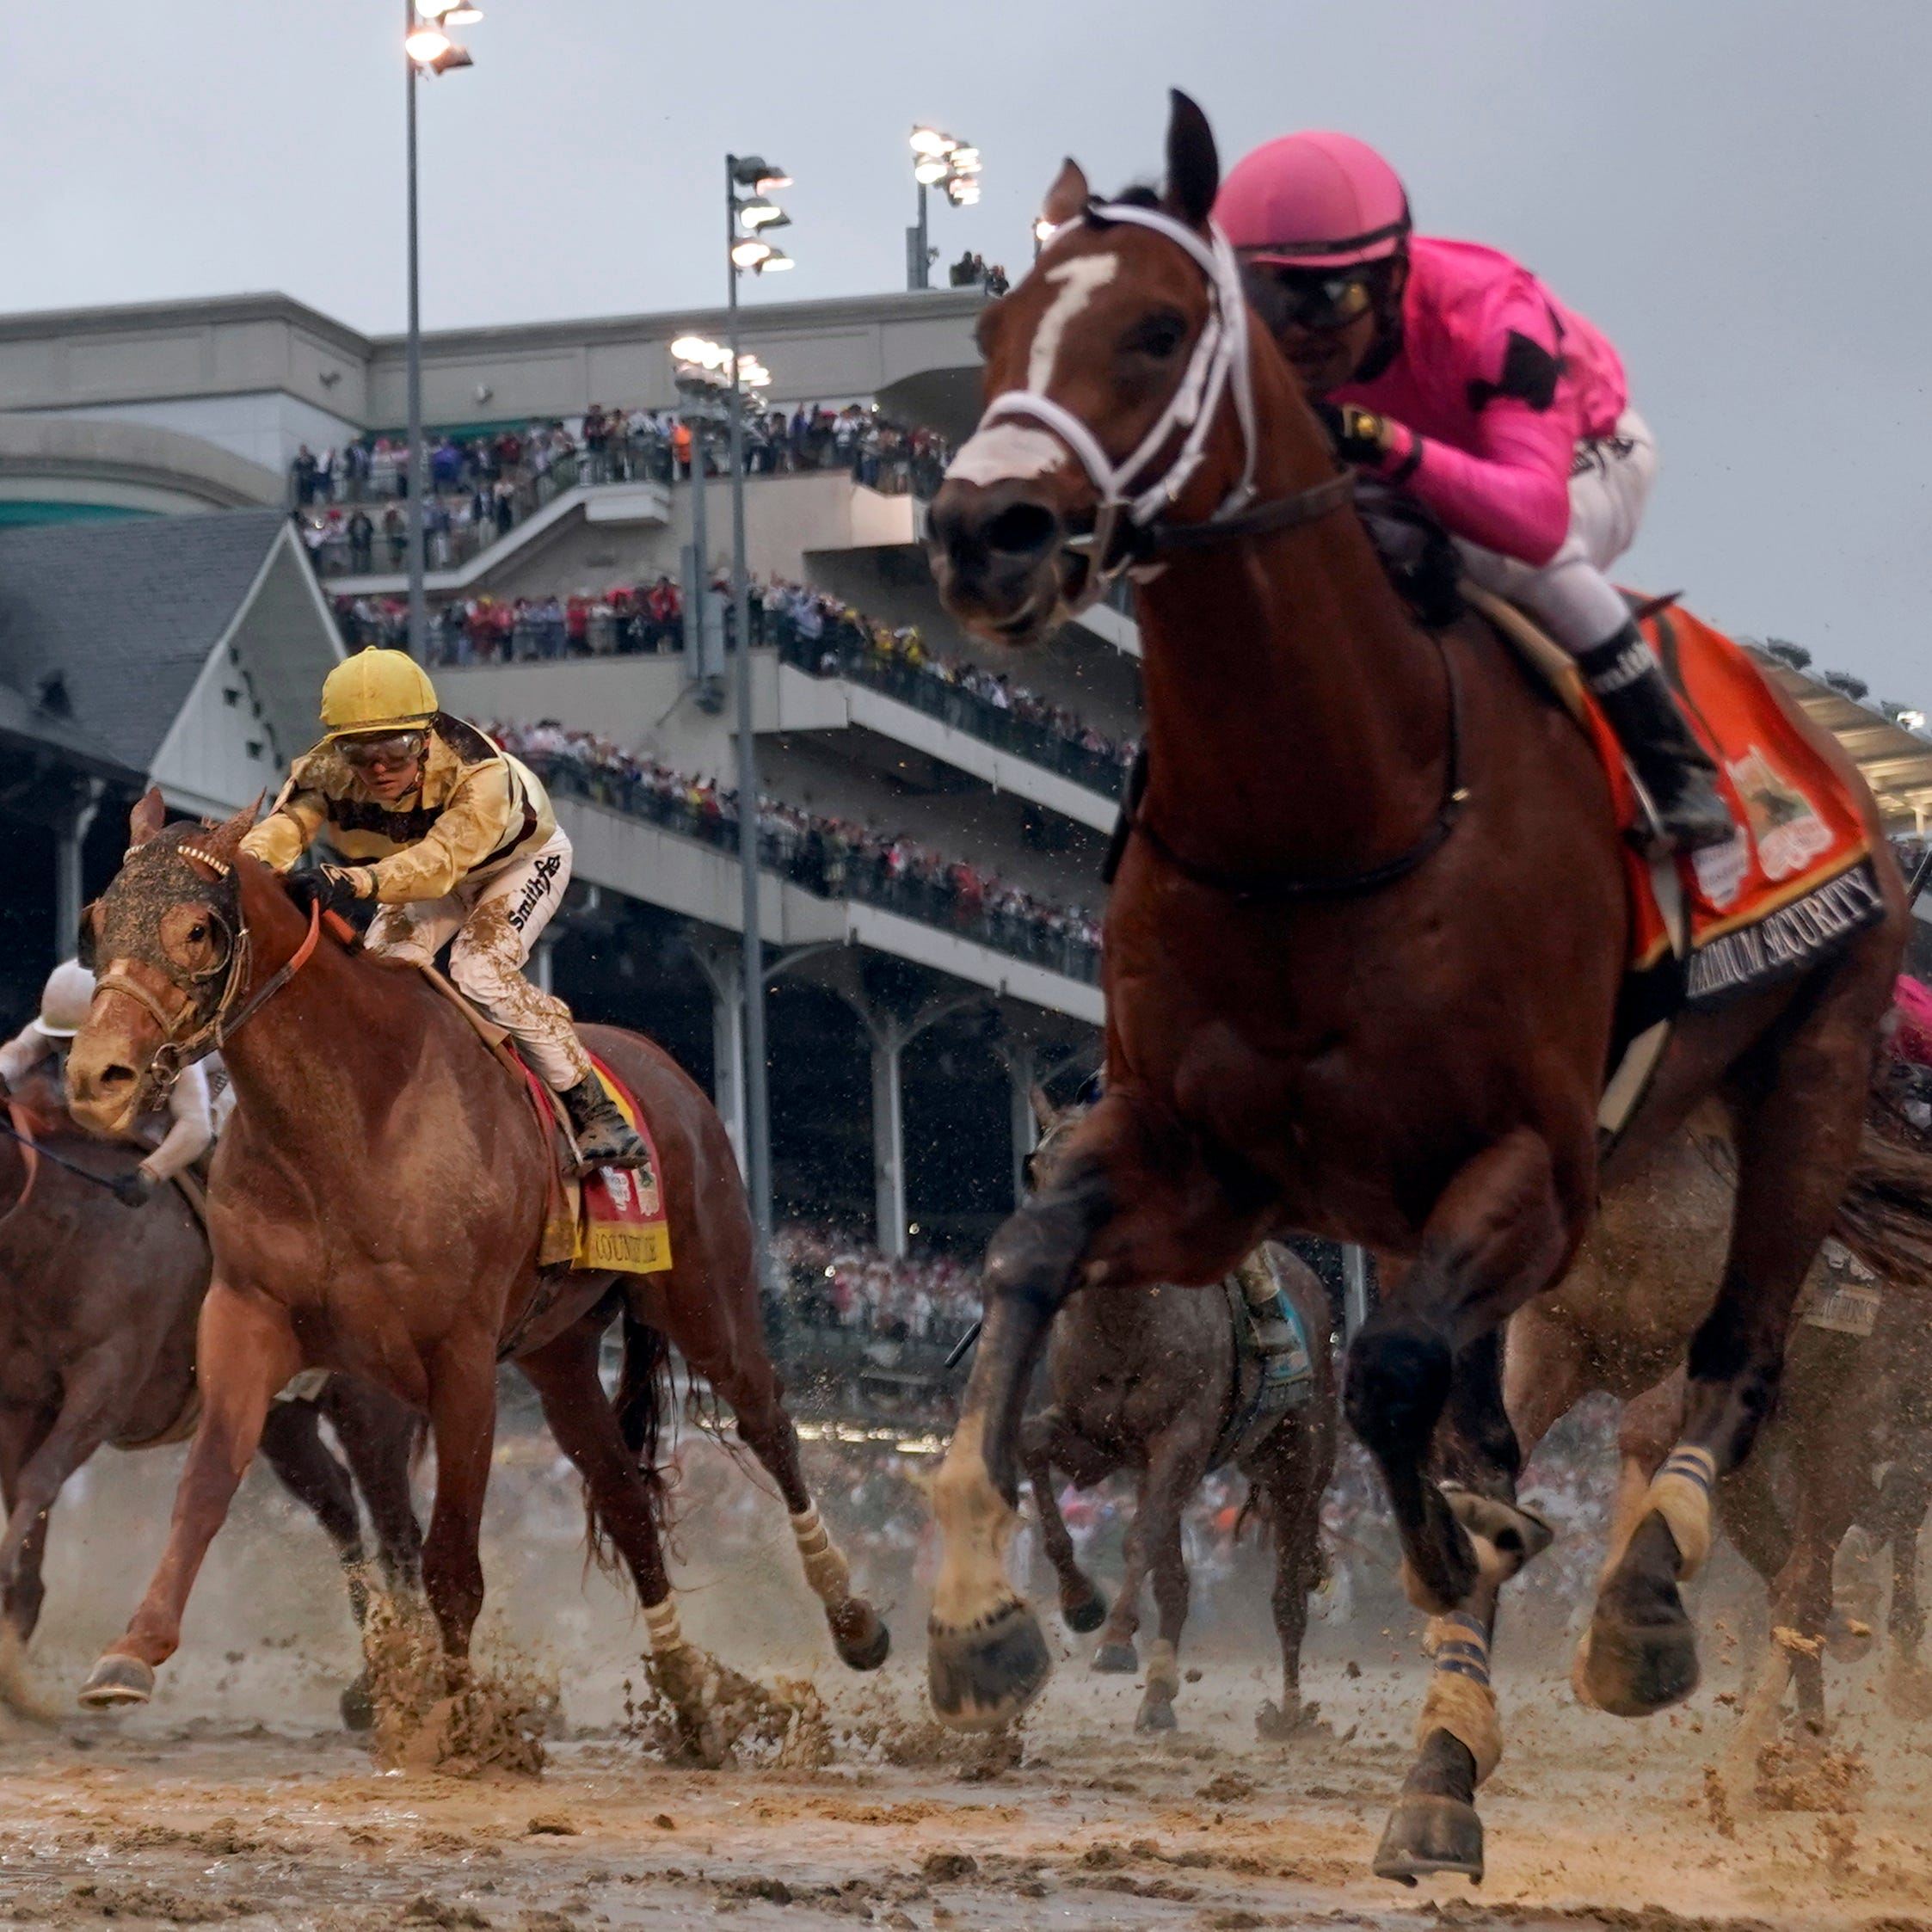 Maximum Security will not run in Preakness after disqualification